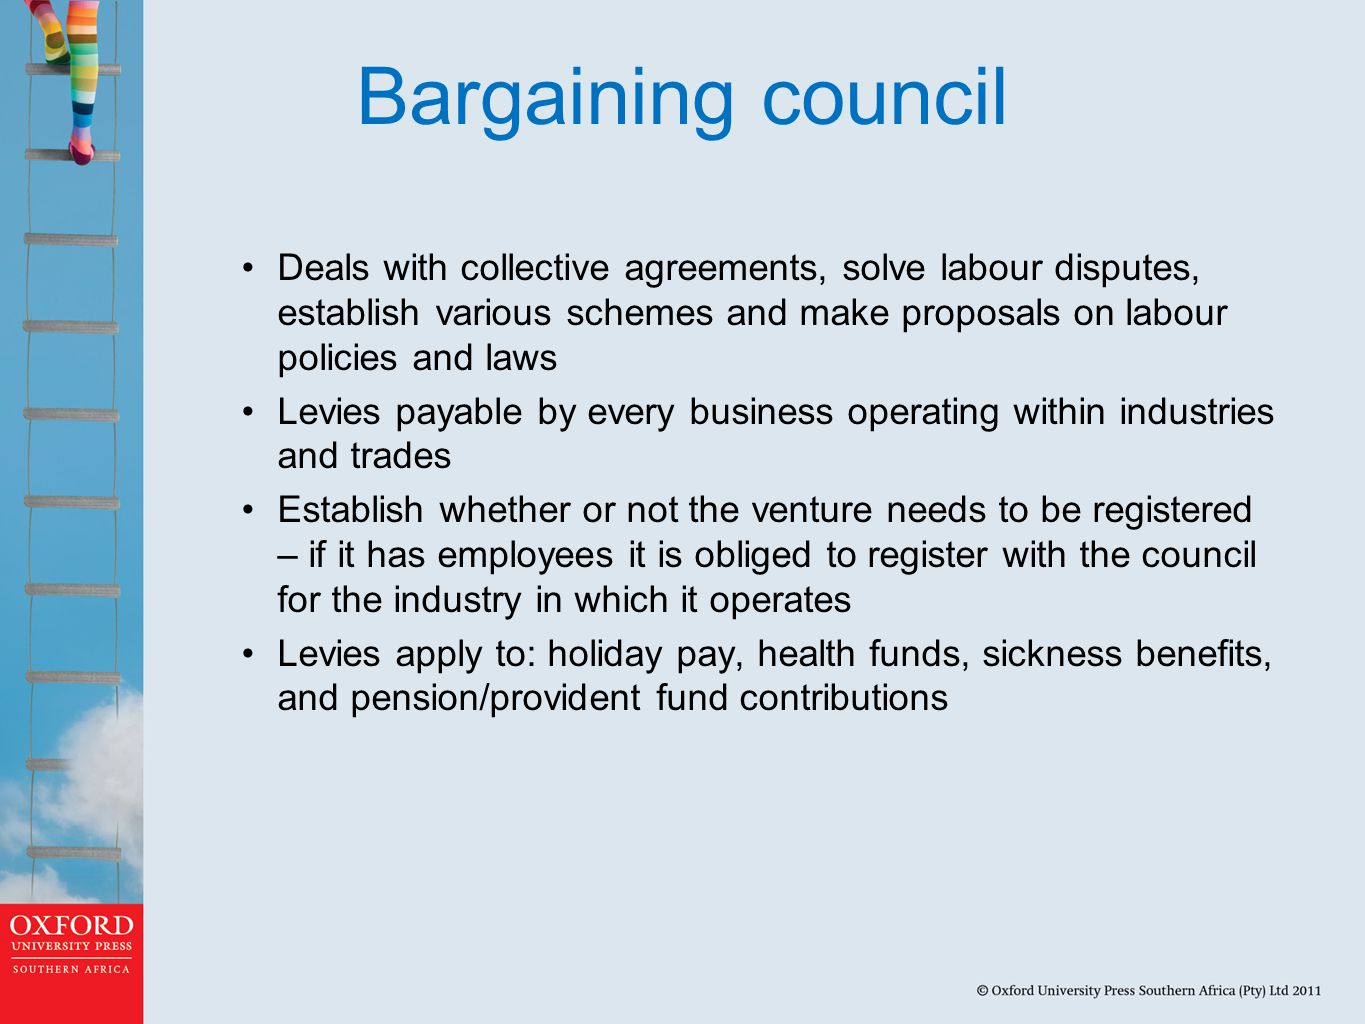 Bargaining council Deals with collective agreements, solve labour disputes, establish various schemes and make proposals on labour policies and laws.